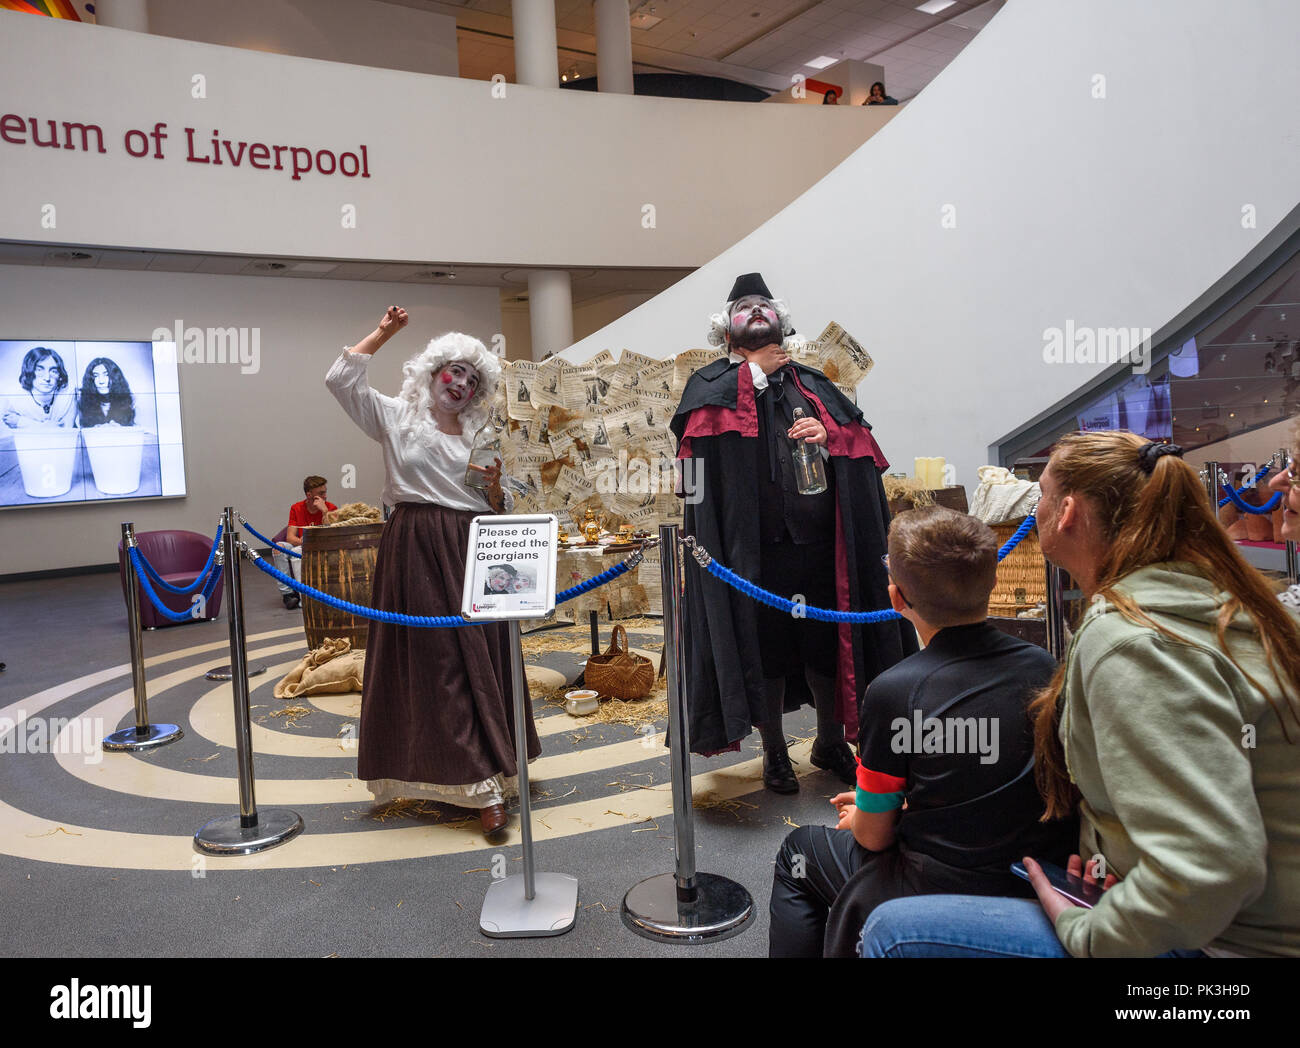 Liverpool 28/8/2018: History lesson on the Georgians in the foyer of the museum of Liverpool, Merseyside, England, United Kingdom. - Stock Image